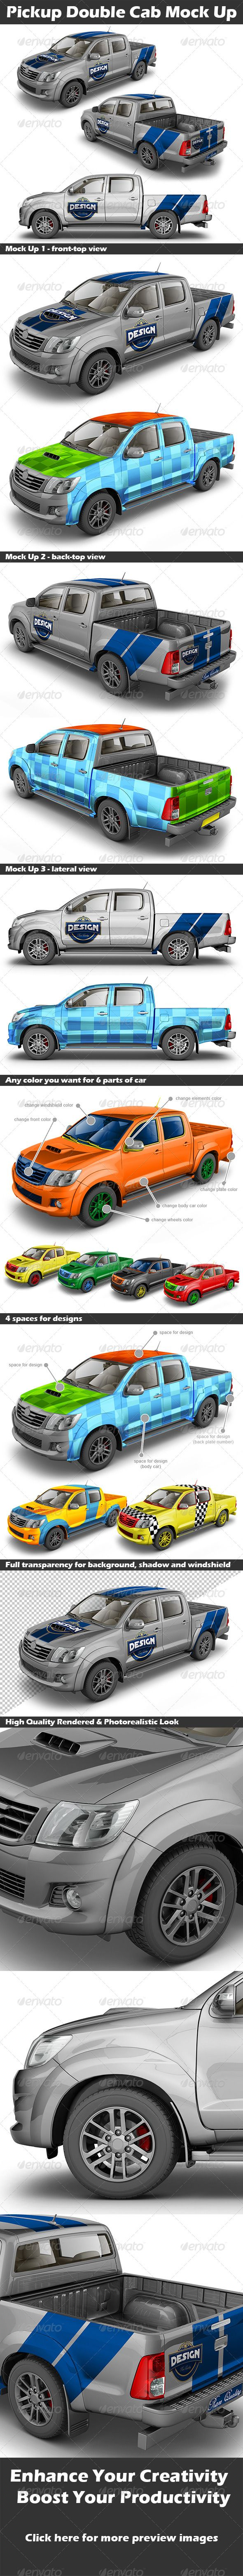 Car sticker design psd - Pickup Double Cab Mock Up Photoshop Psd Bakkie Cab Available Here